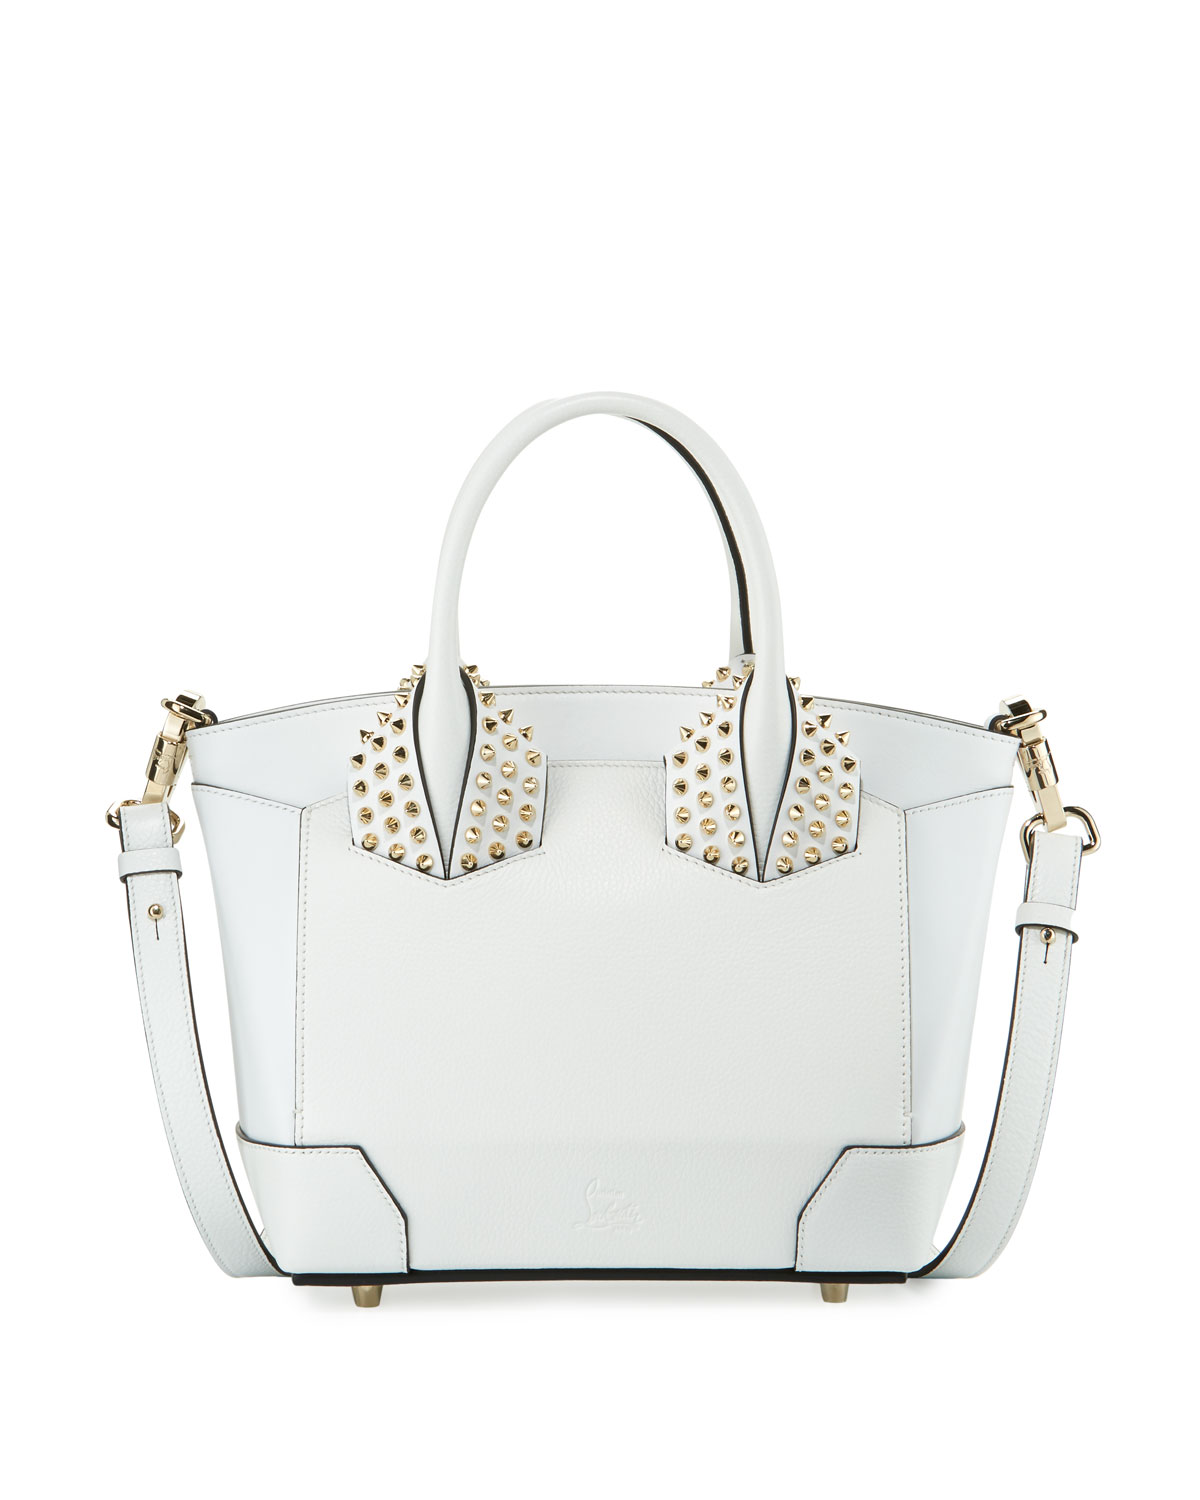 Eloise Small Leather Tote Bag, White